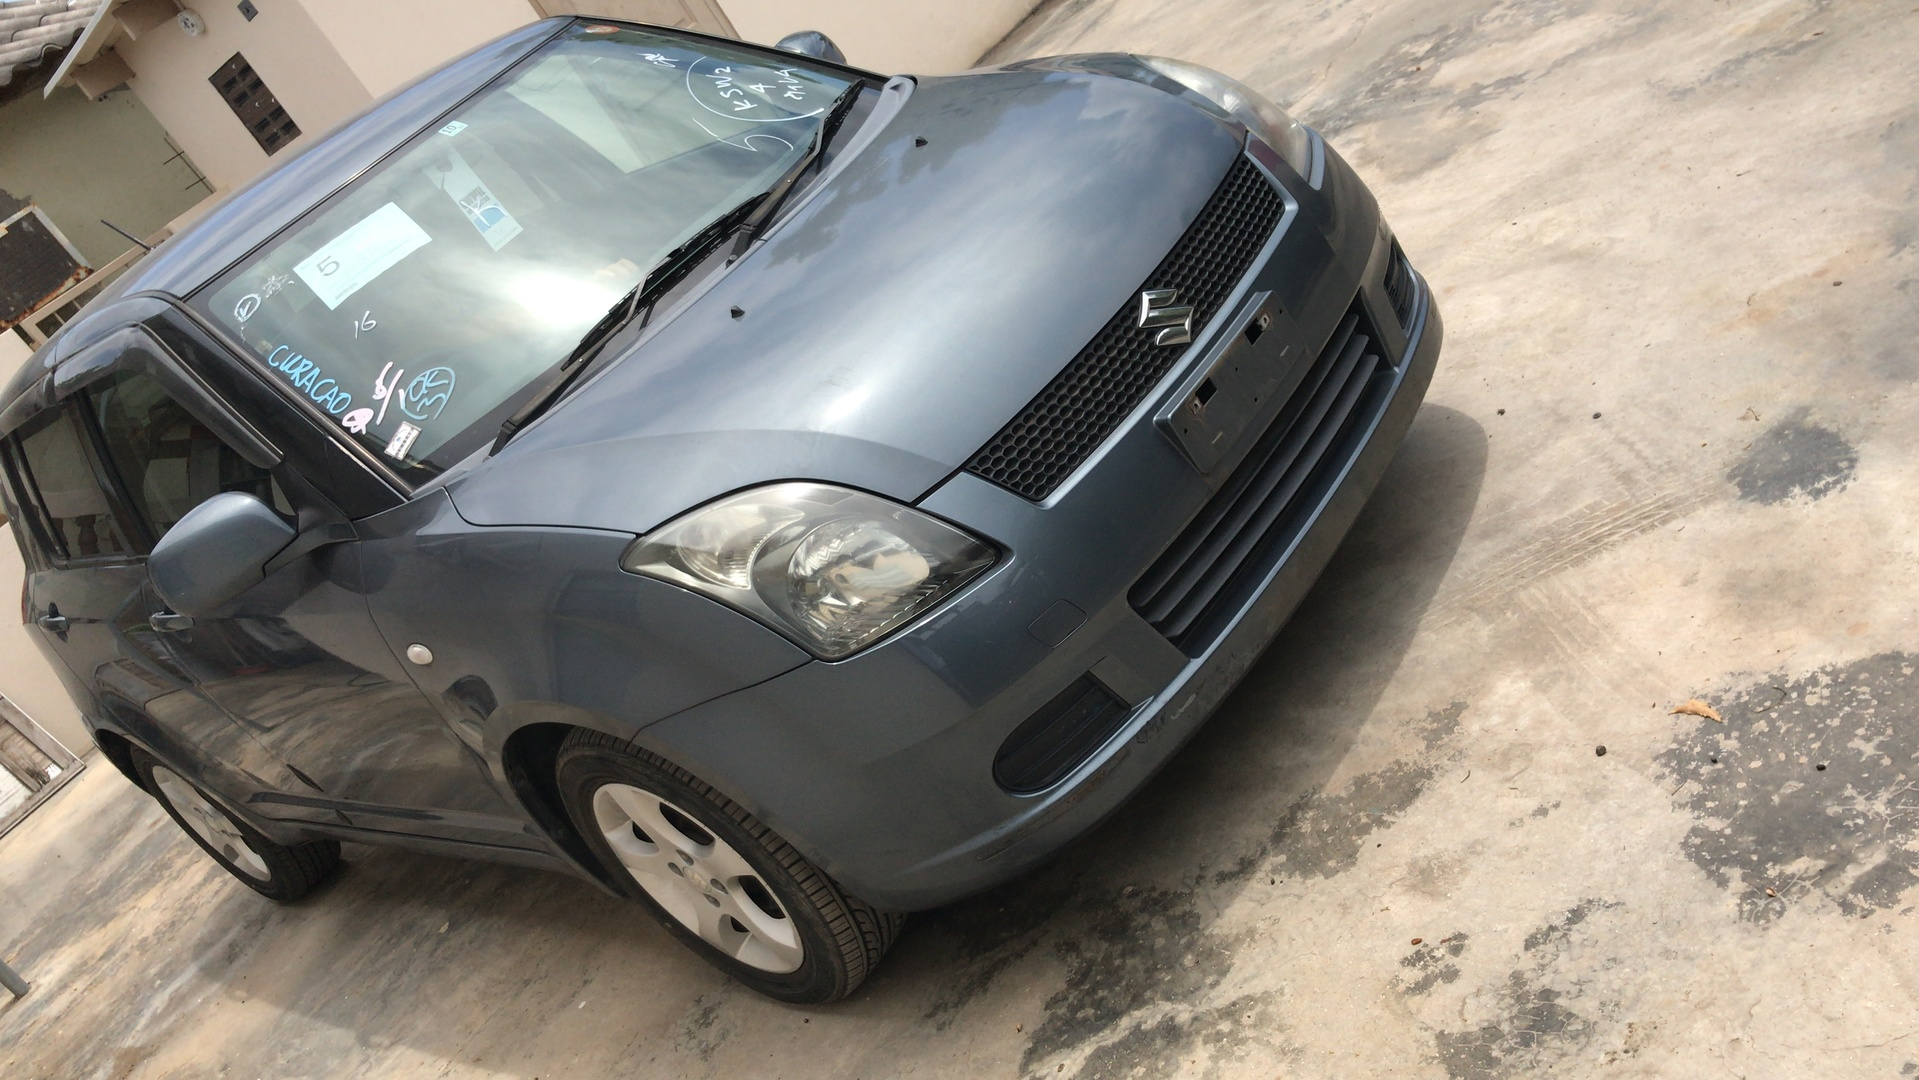 Best Price Used SUZUKI SWIFT for Sale - Japanese Used Cars BE FORWARD